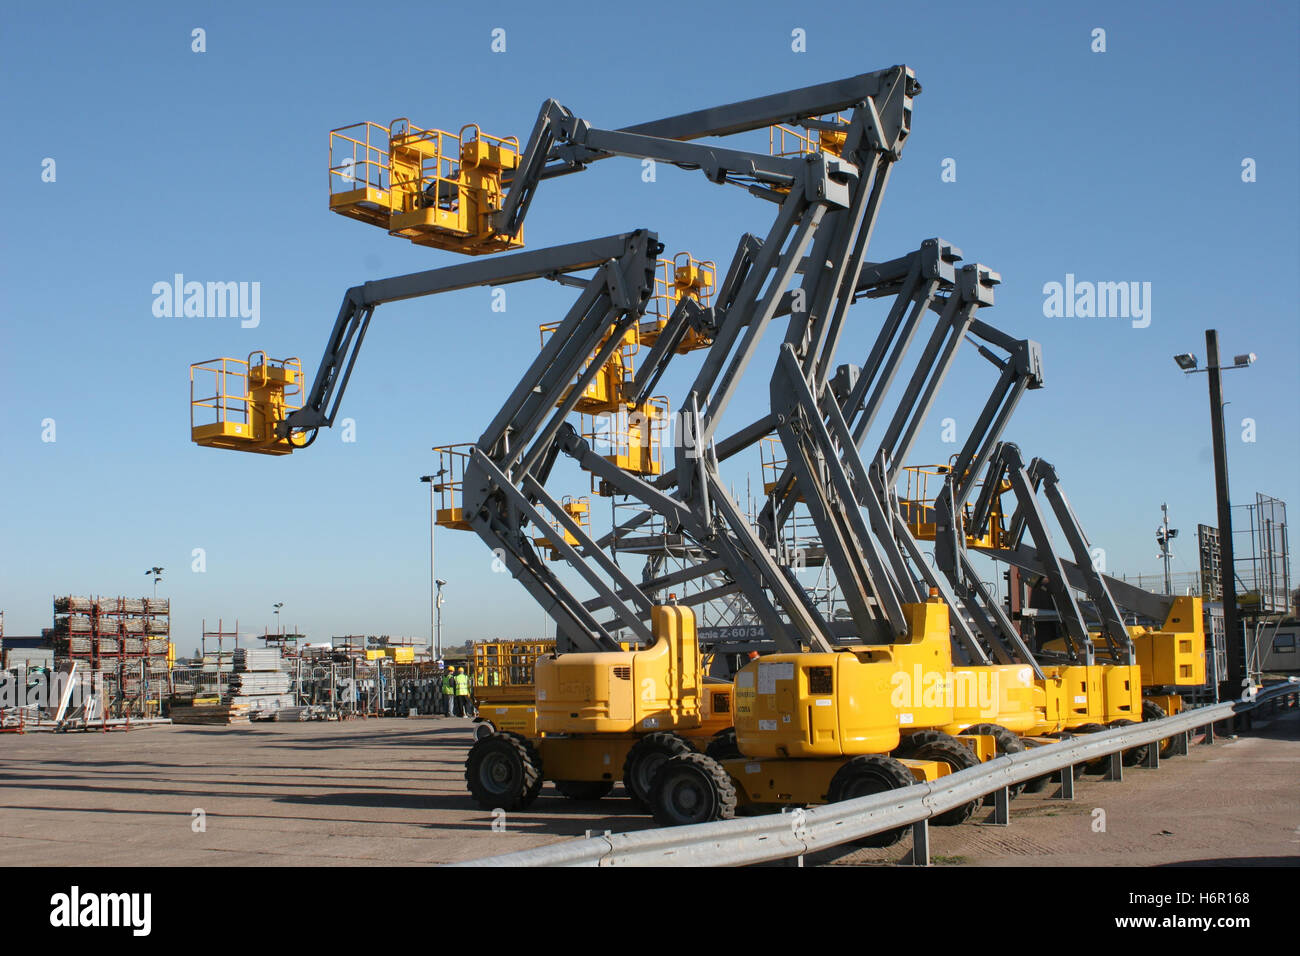 A row of 9 mobile elevating work platforms in a yard with their booms elevated in a range of positions - Stock Image